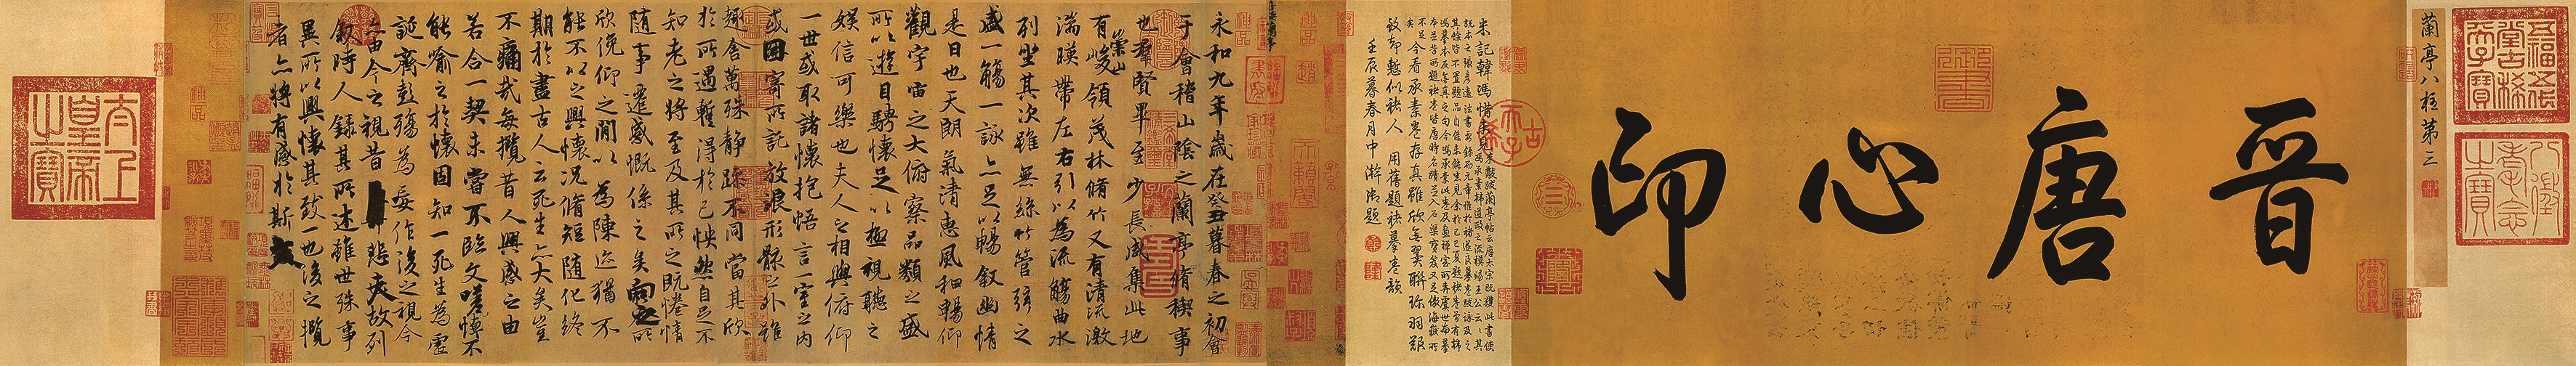 "Lan Ting Xu, or Preface to the Poems Collected from the Orchid Pavilion, was written by Wang Xizhi (AD 303-361), known as the ""Sage of Chinese Calligraphy."" Written in the Semi-Cursive style, the 324-character manuscript has been widely claimed a timeless classic."